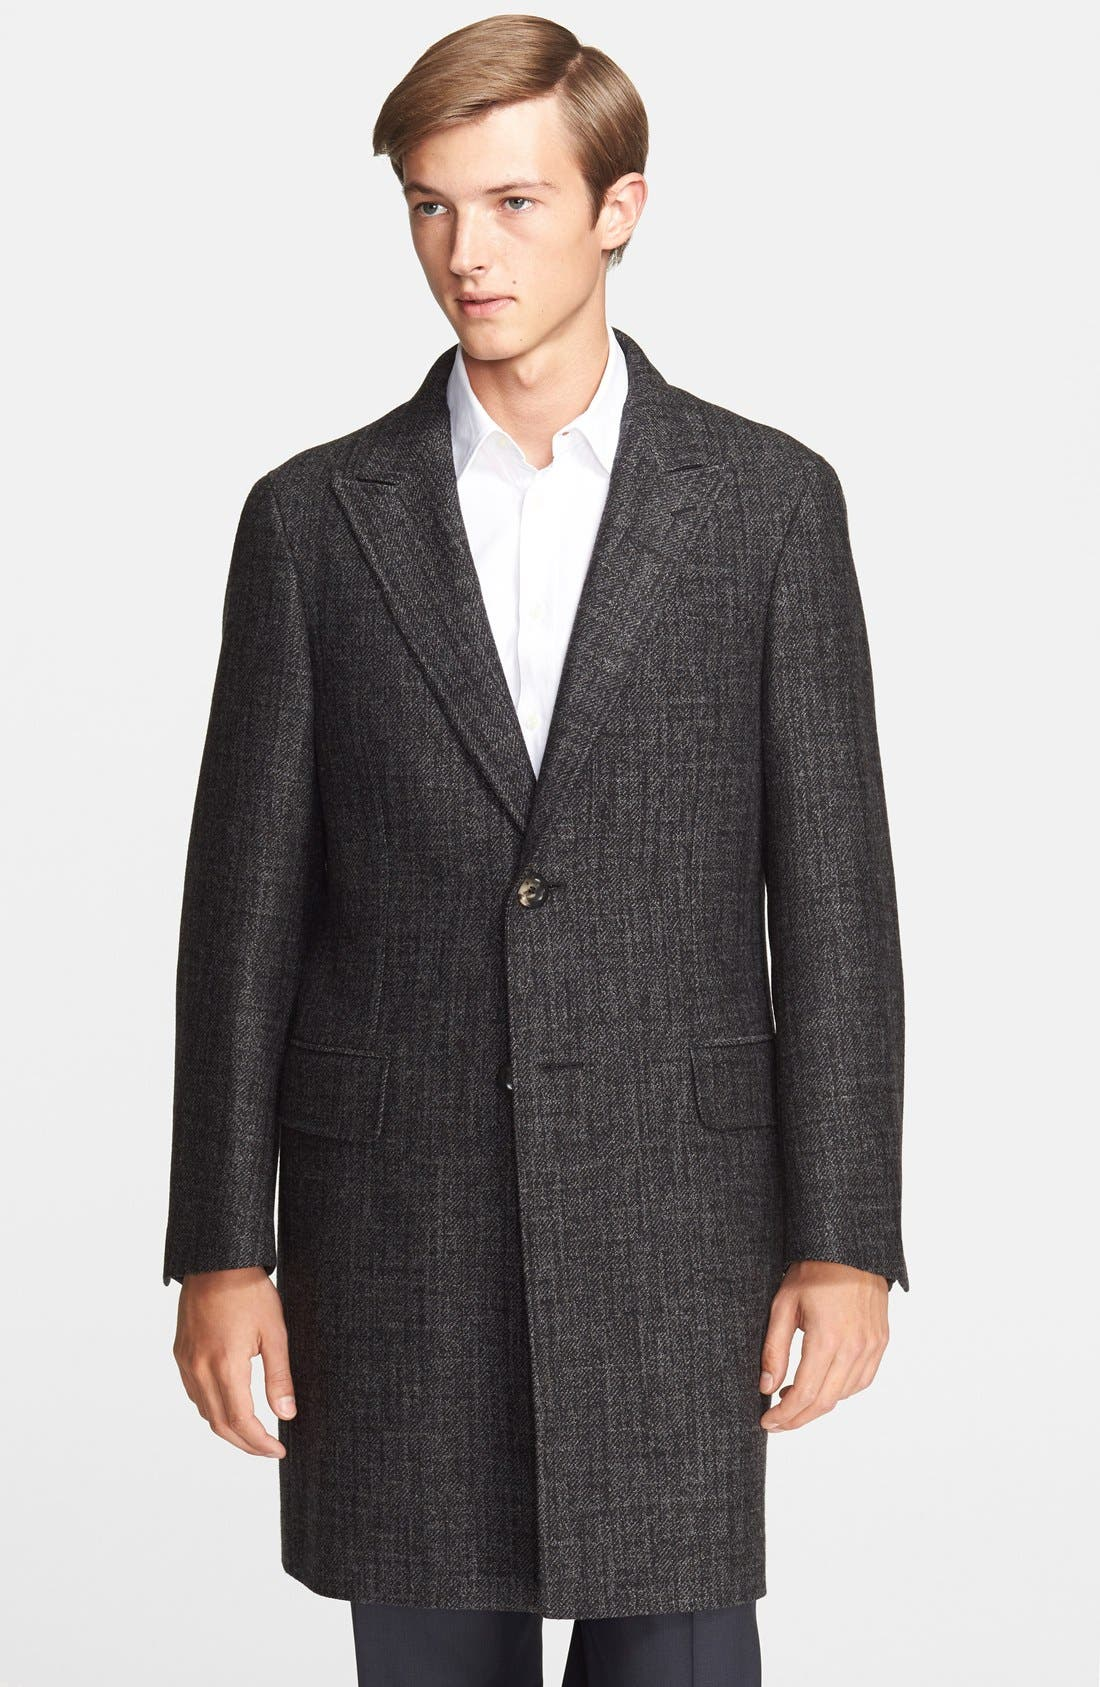 CANALI Plaid Wool Overcoat, Main, color, 011